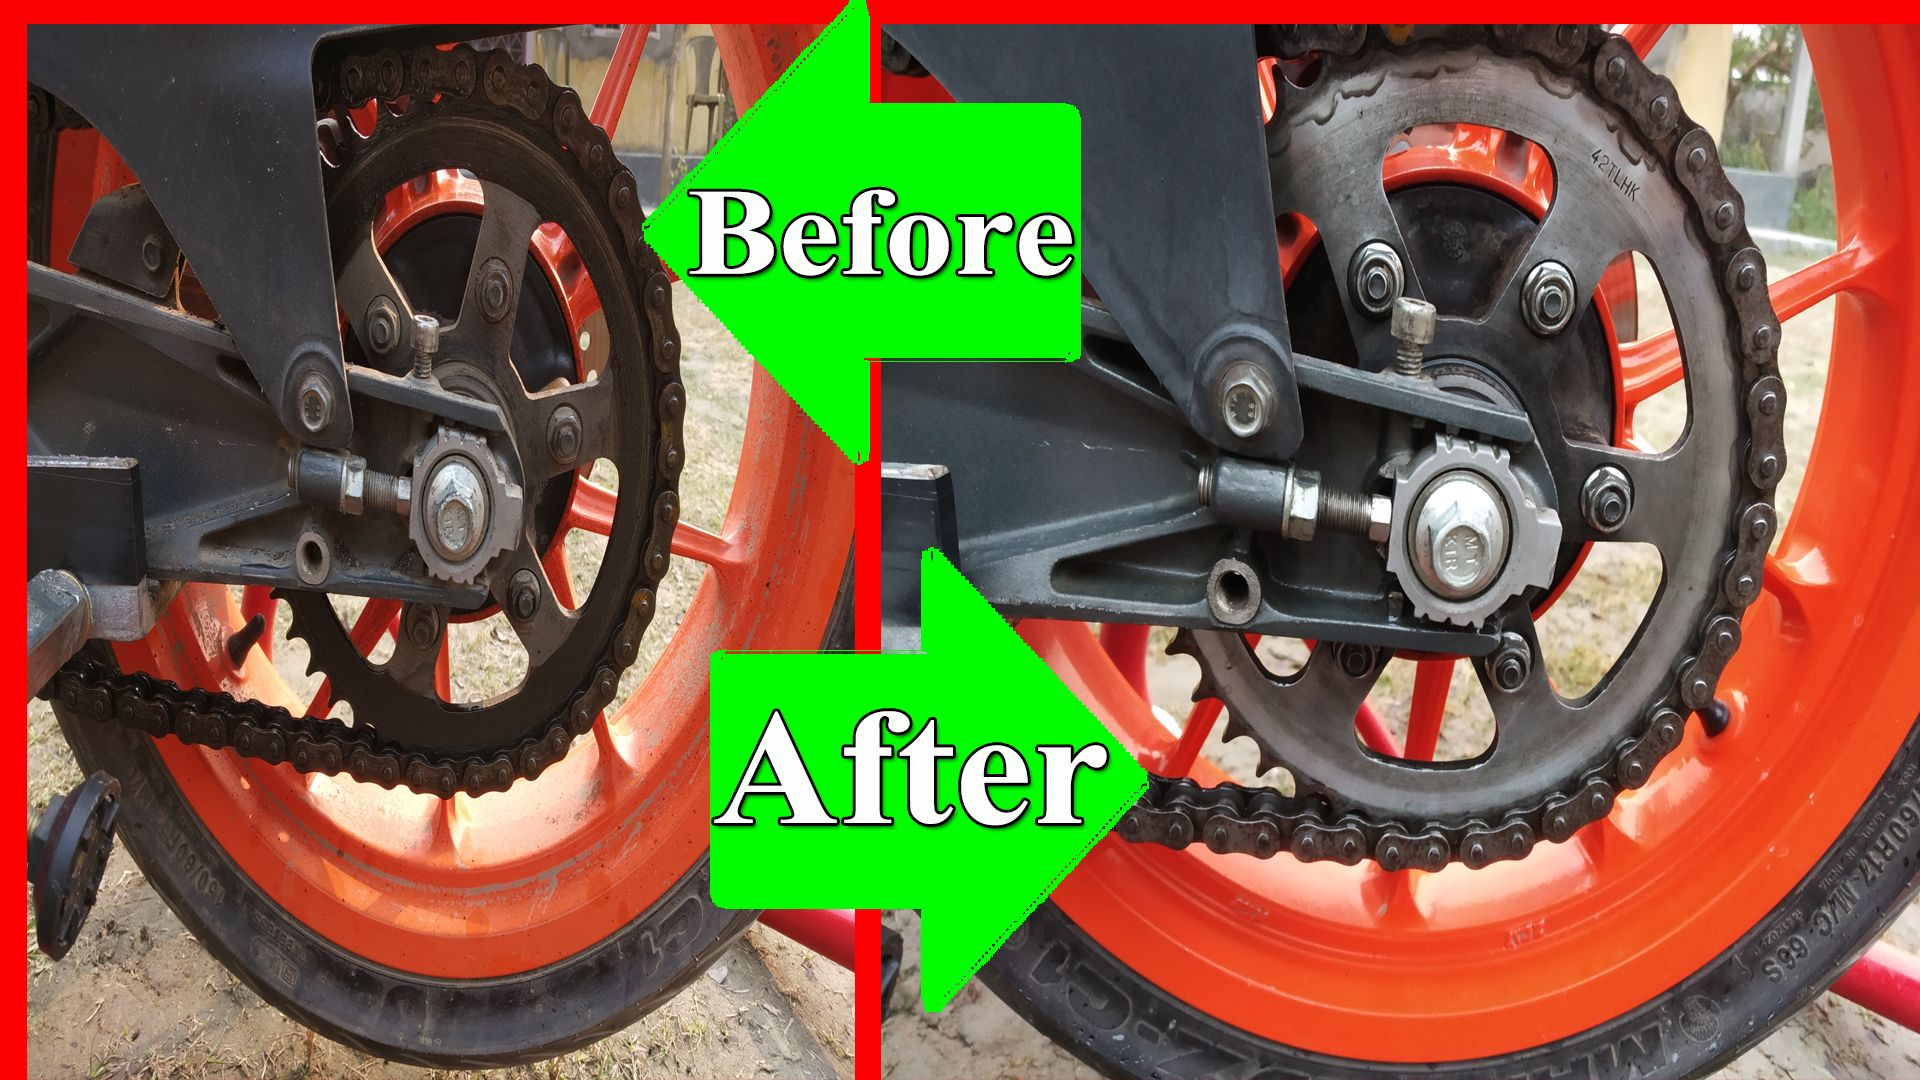 Pin by HowToHack on Motorcycle Chain Clean   Motorcycle chain, Motorcycle, Motul